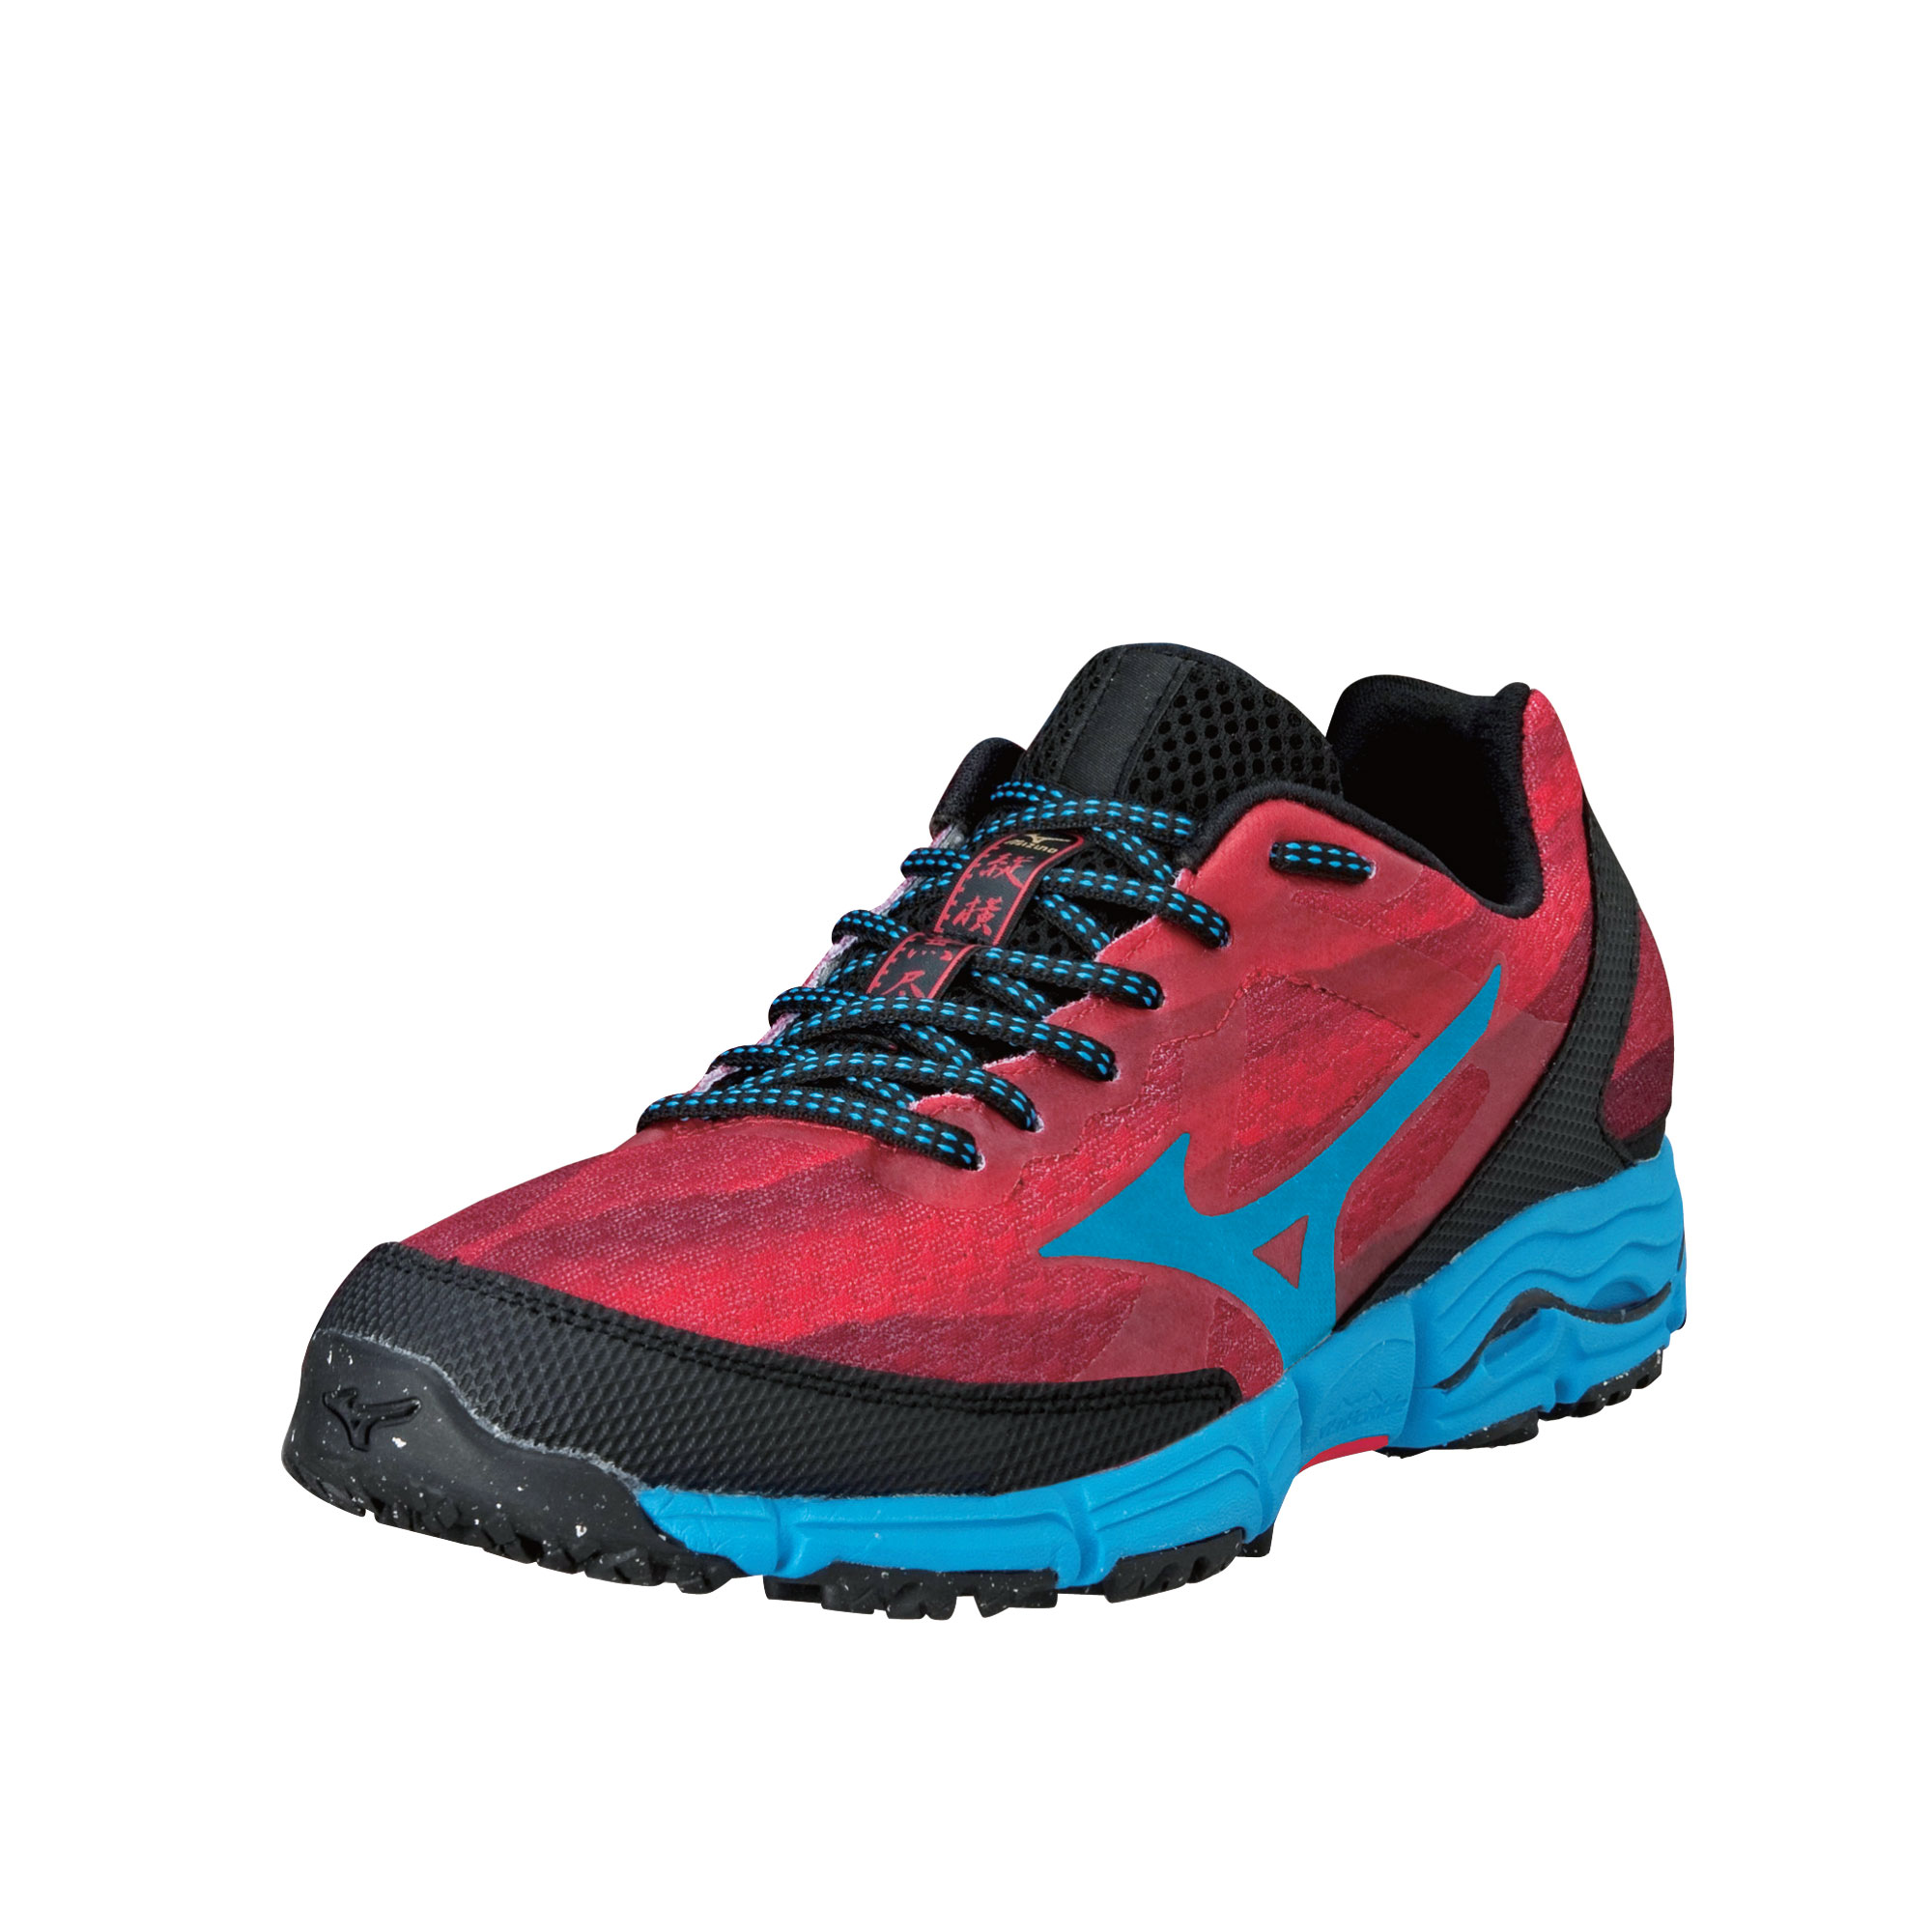 b74f7af56ab 6 chaussures pour ultra trail - Runner s World